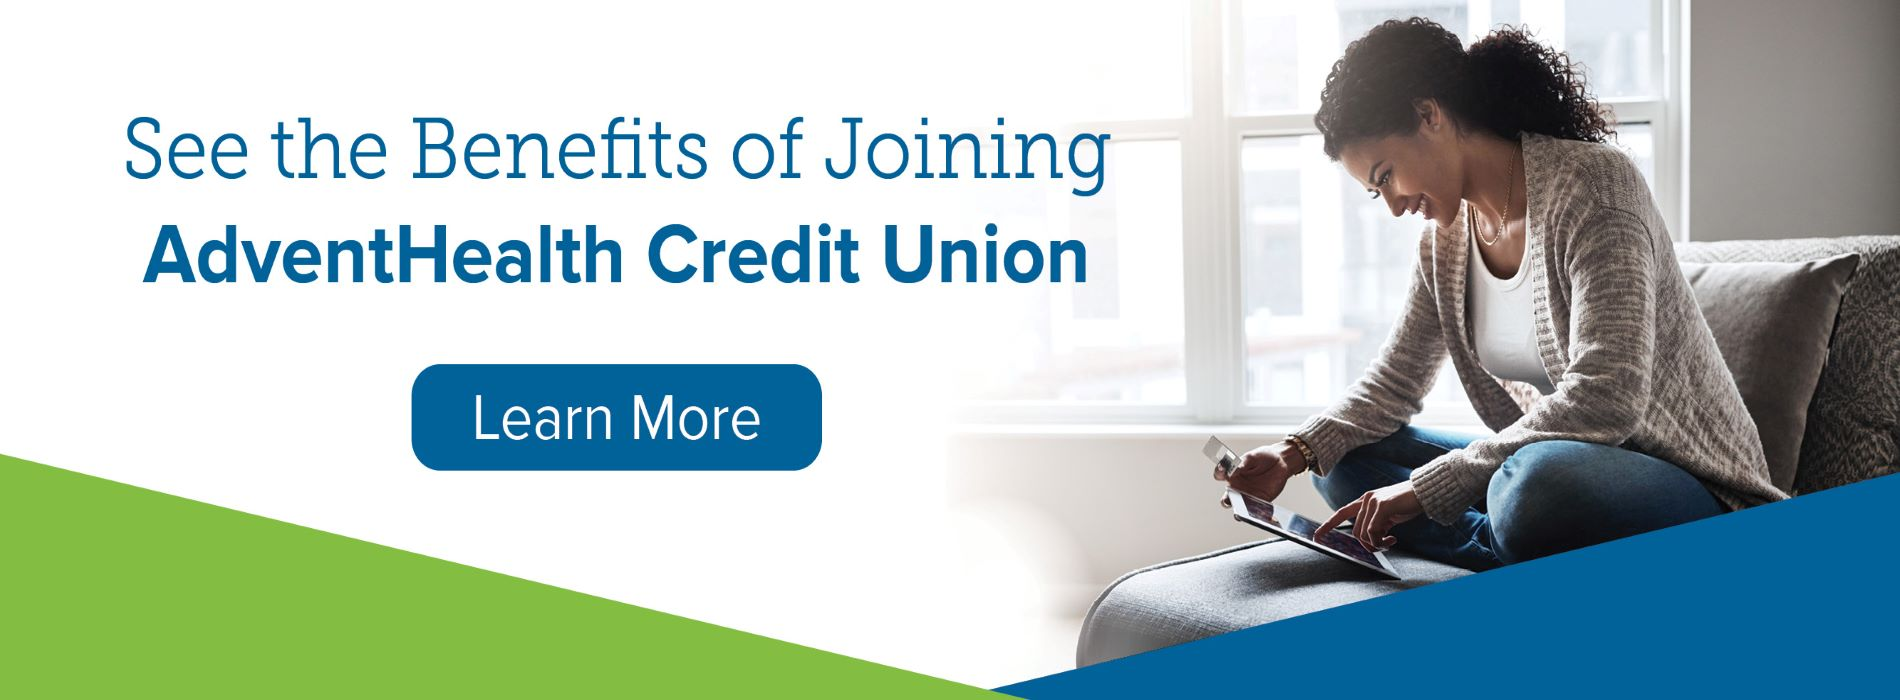 Learn more about the benefits of joining Adventhealth Credit Union